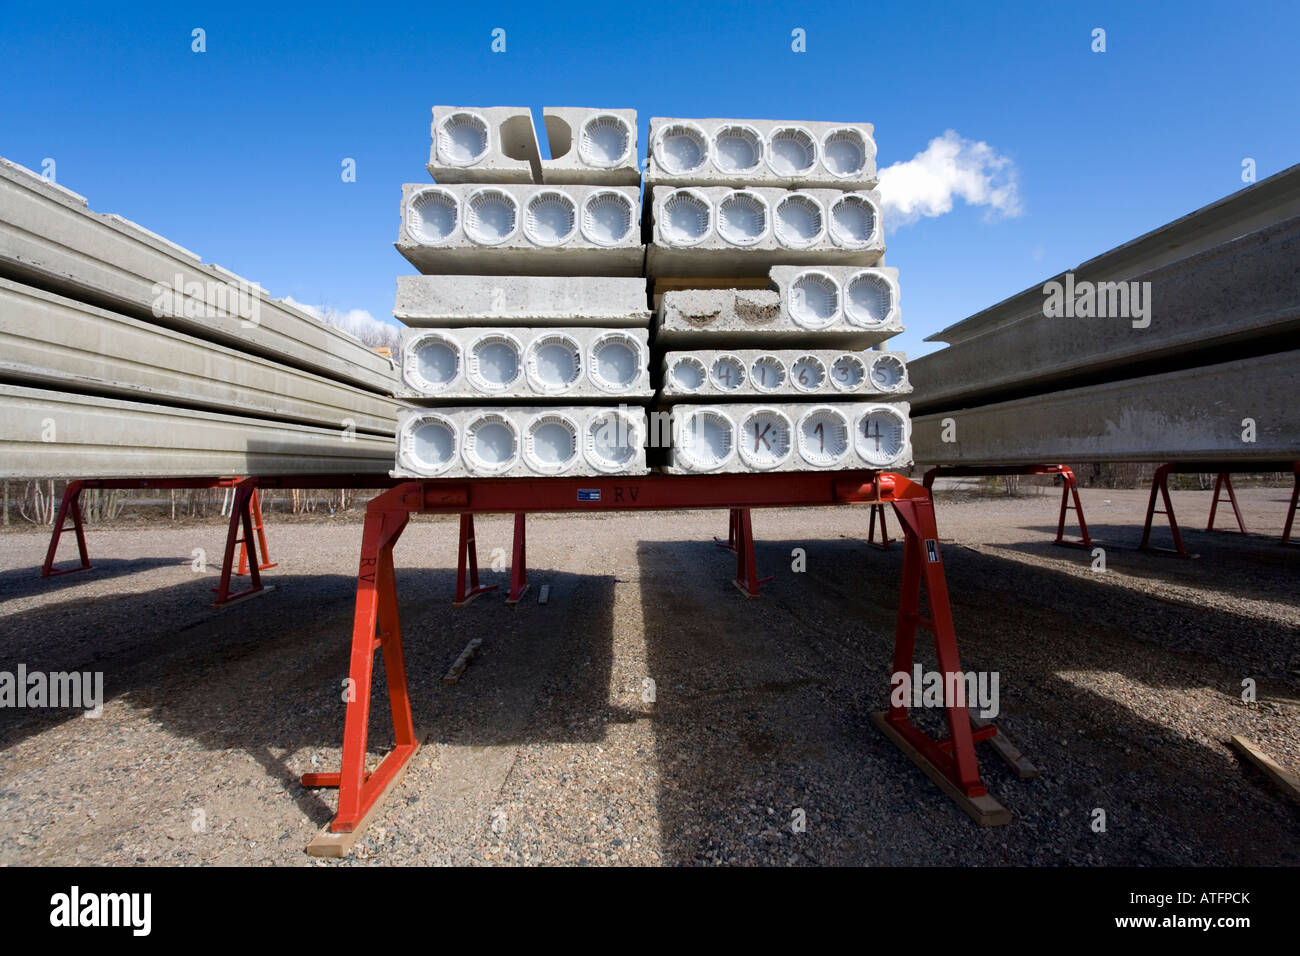 Inventory of faulty and cracked prefabricated hollow core concrete construction elements - Stock Image